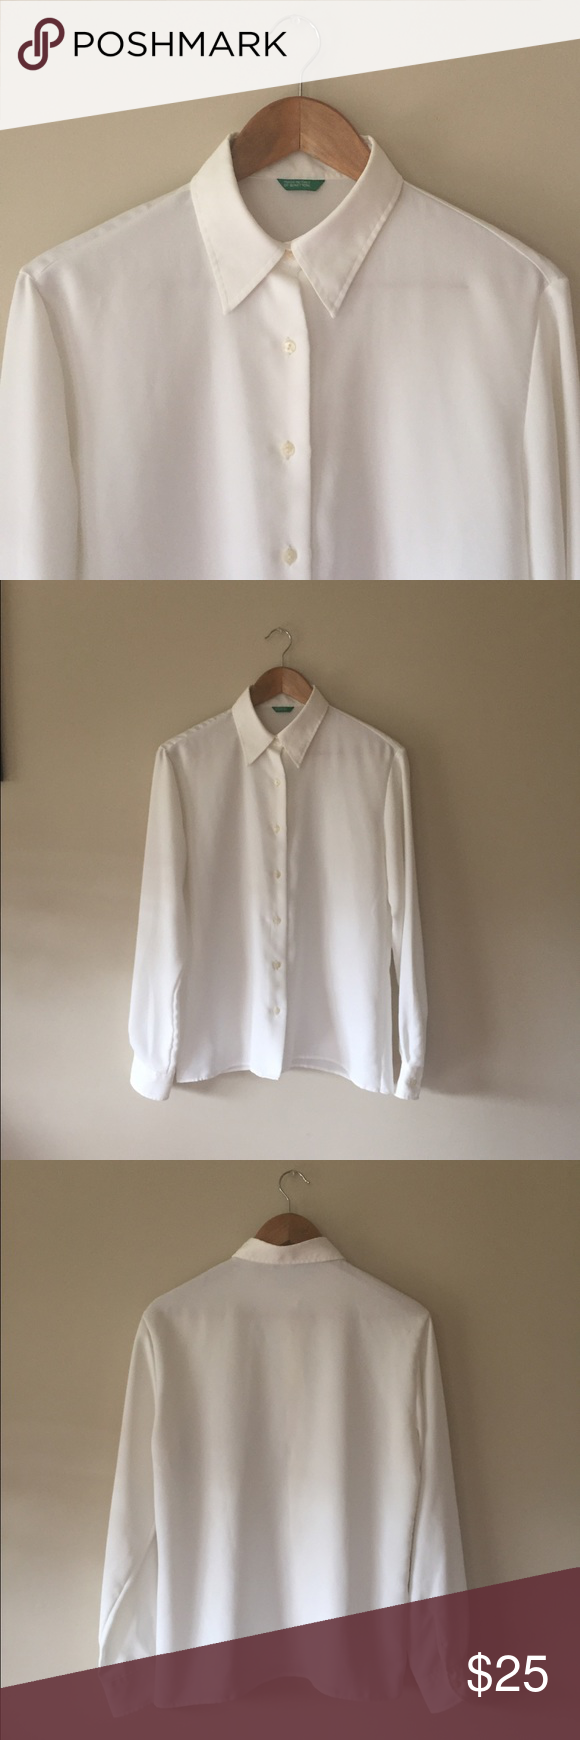 """Benetton white button up shirt This silky smooth top is comfy and crisp! 100% polyester prevents wrinkles. Excellent condition, I bought this to wear oversized but never did. Size says medium but fits like L or XL.   26"""" long, 18"""" shoulders.                                              Ships from Hawaii 🌺 No trades 😇 Reasonable offers welcome 👍🏻 United Colors Of Benetton Tops Button Down Shirts"""